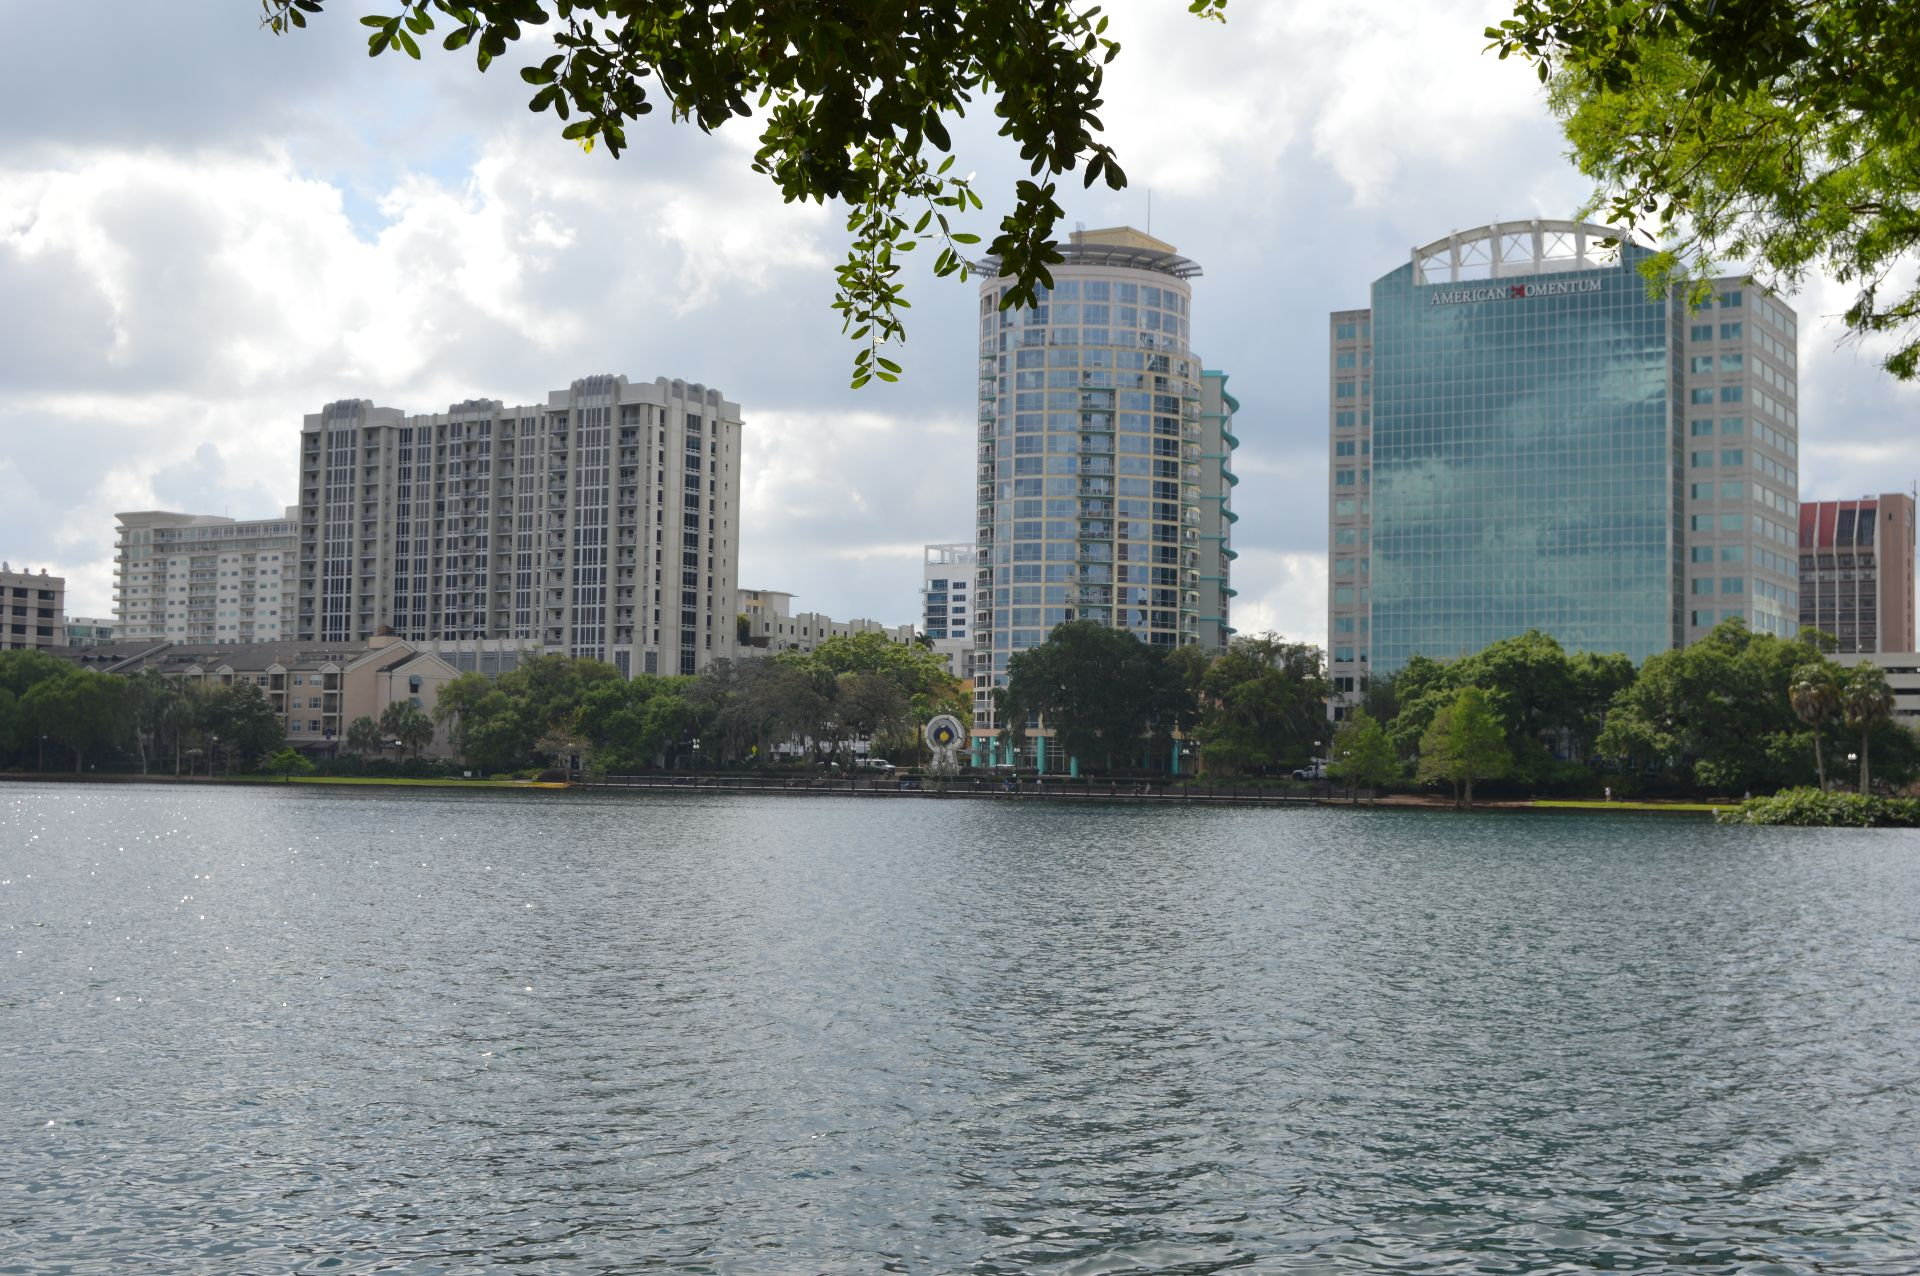 View of buildings from across a river